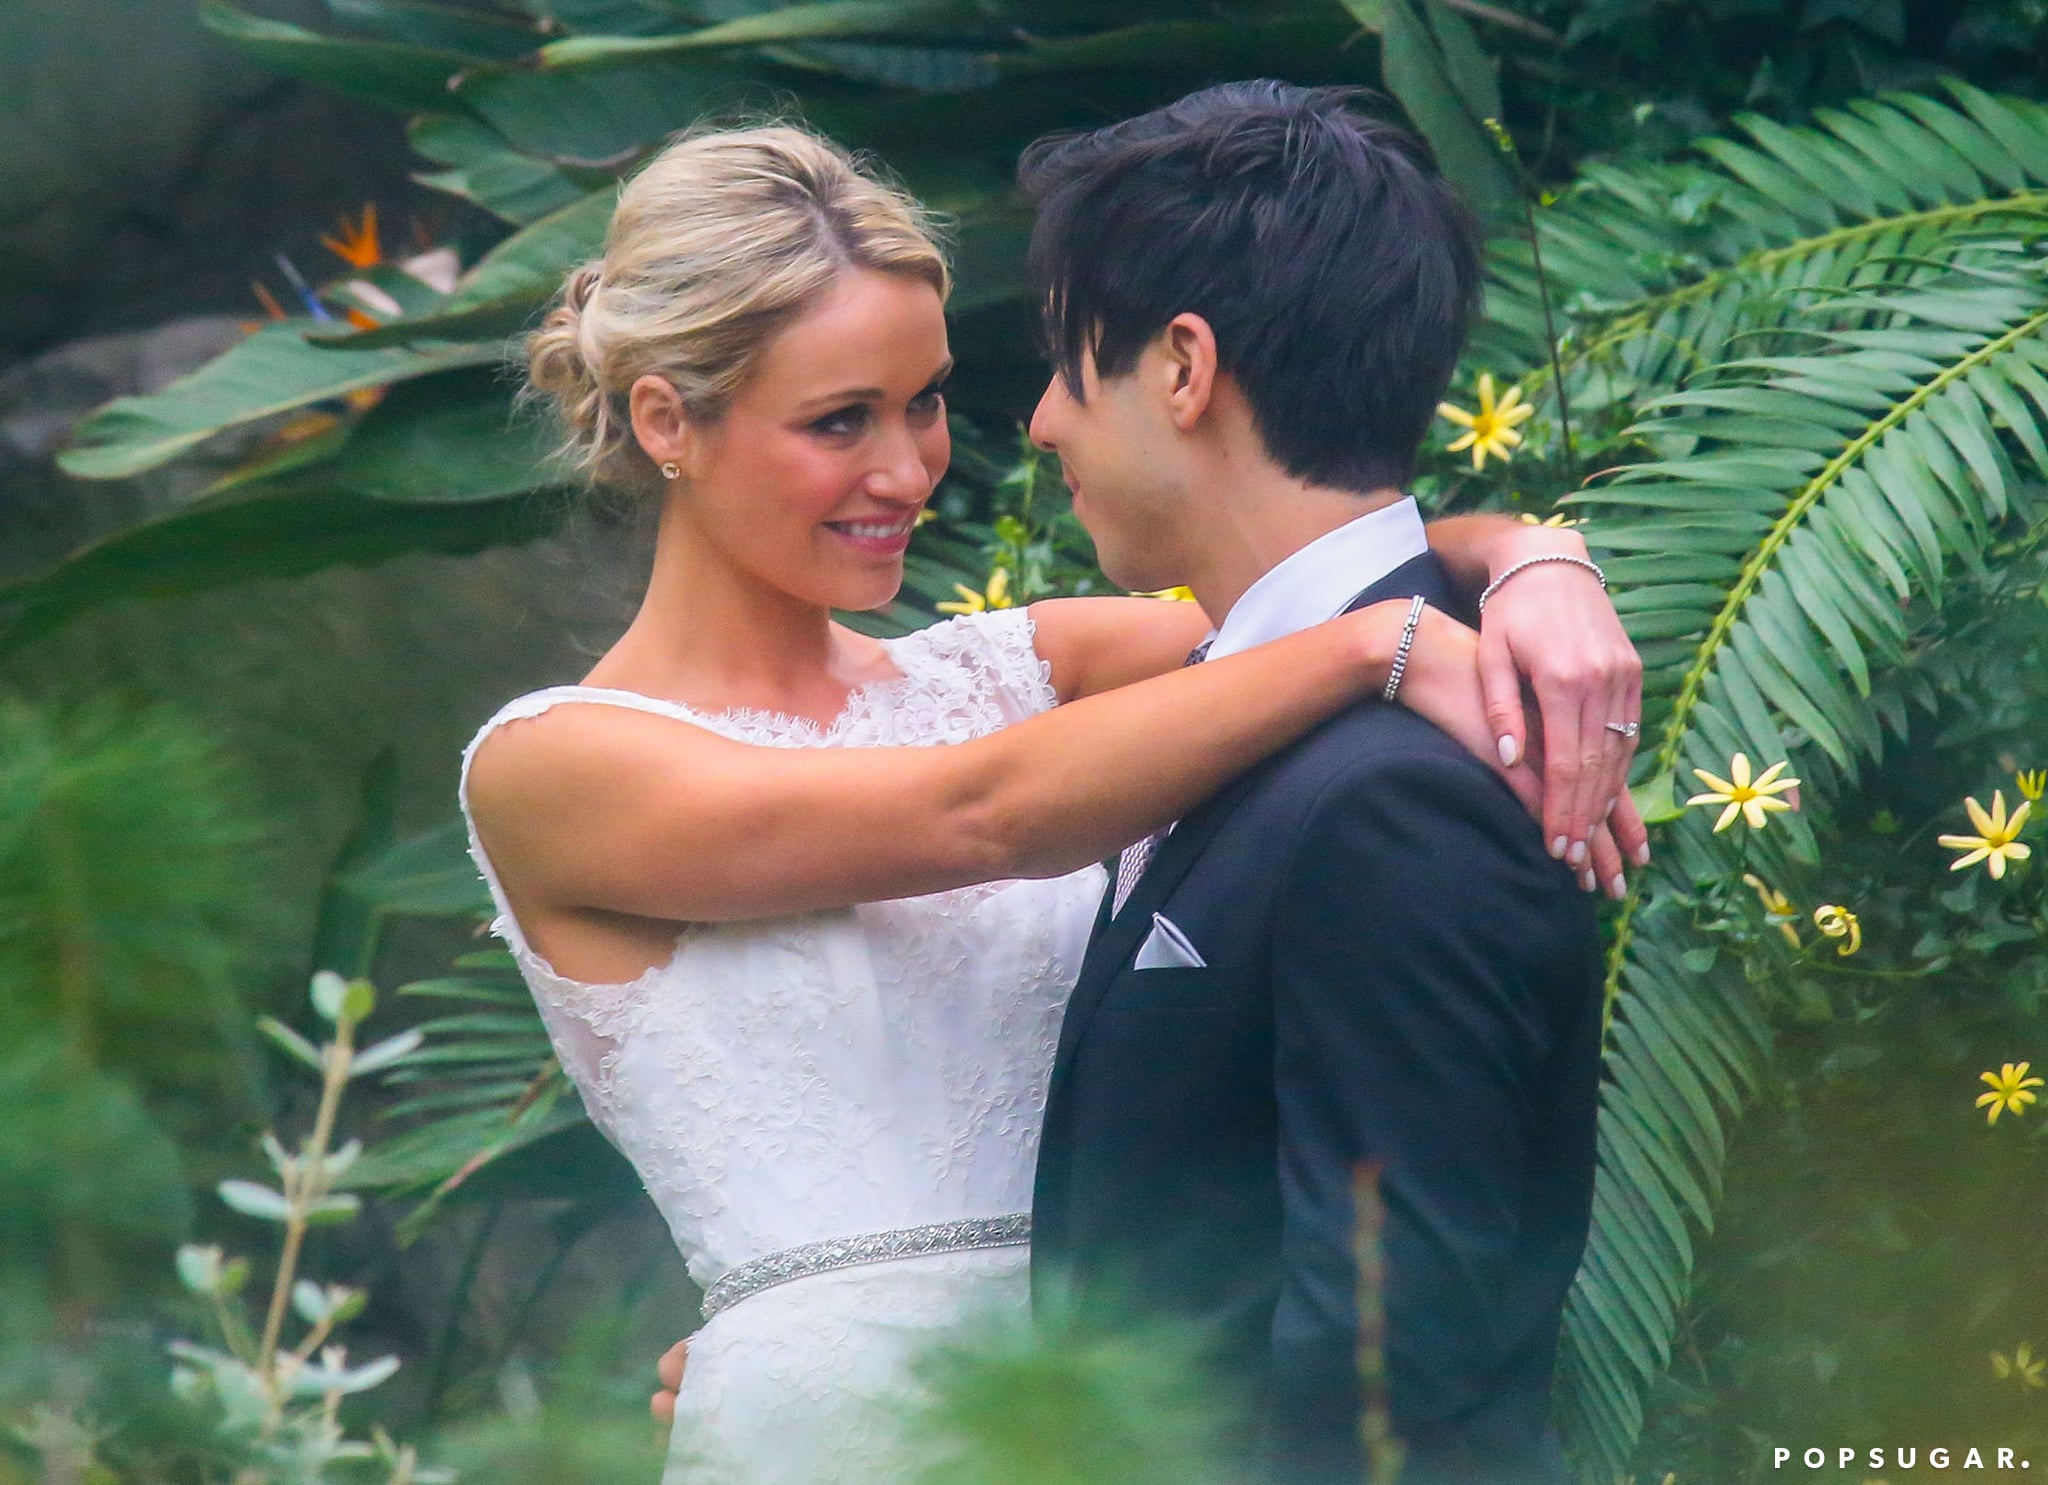 Katrina Bowden shared a look of love with husband Ben Jorgensen on their wedding day.